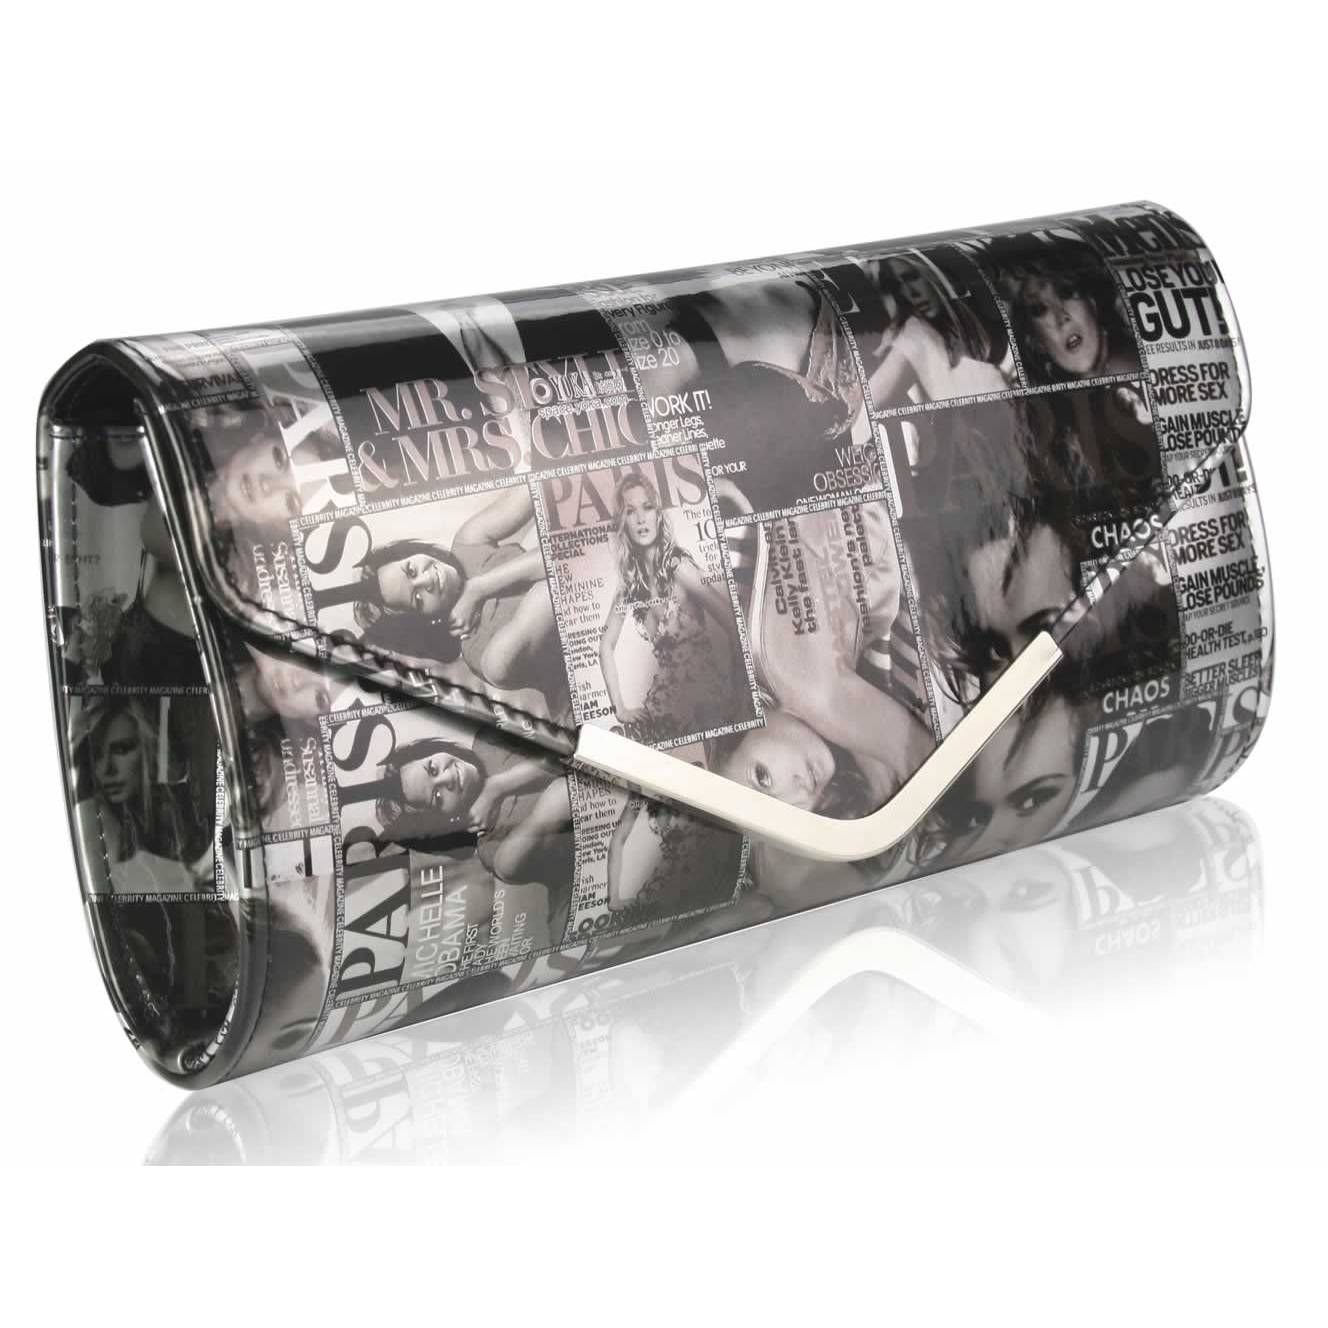 Magazine Print Clutch Bag Extremely Fashionable Right Now This Will Make You Stand Out From The Crowd It Is Perfect For Nights